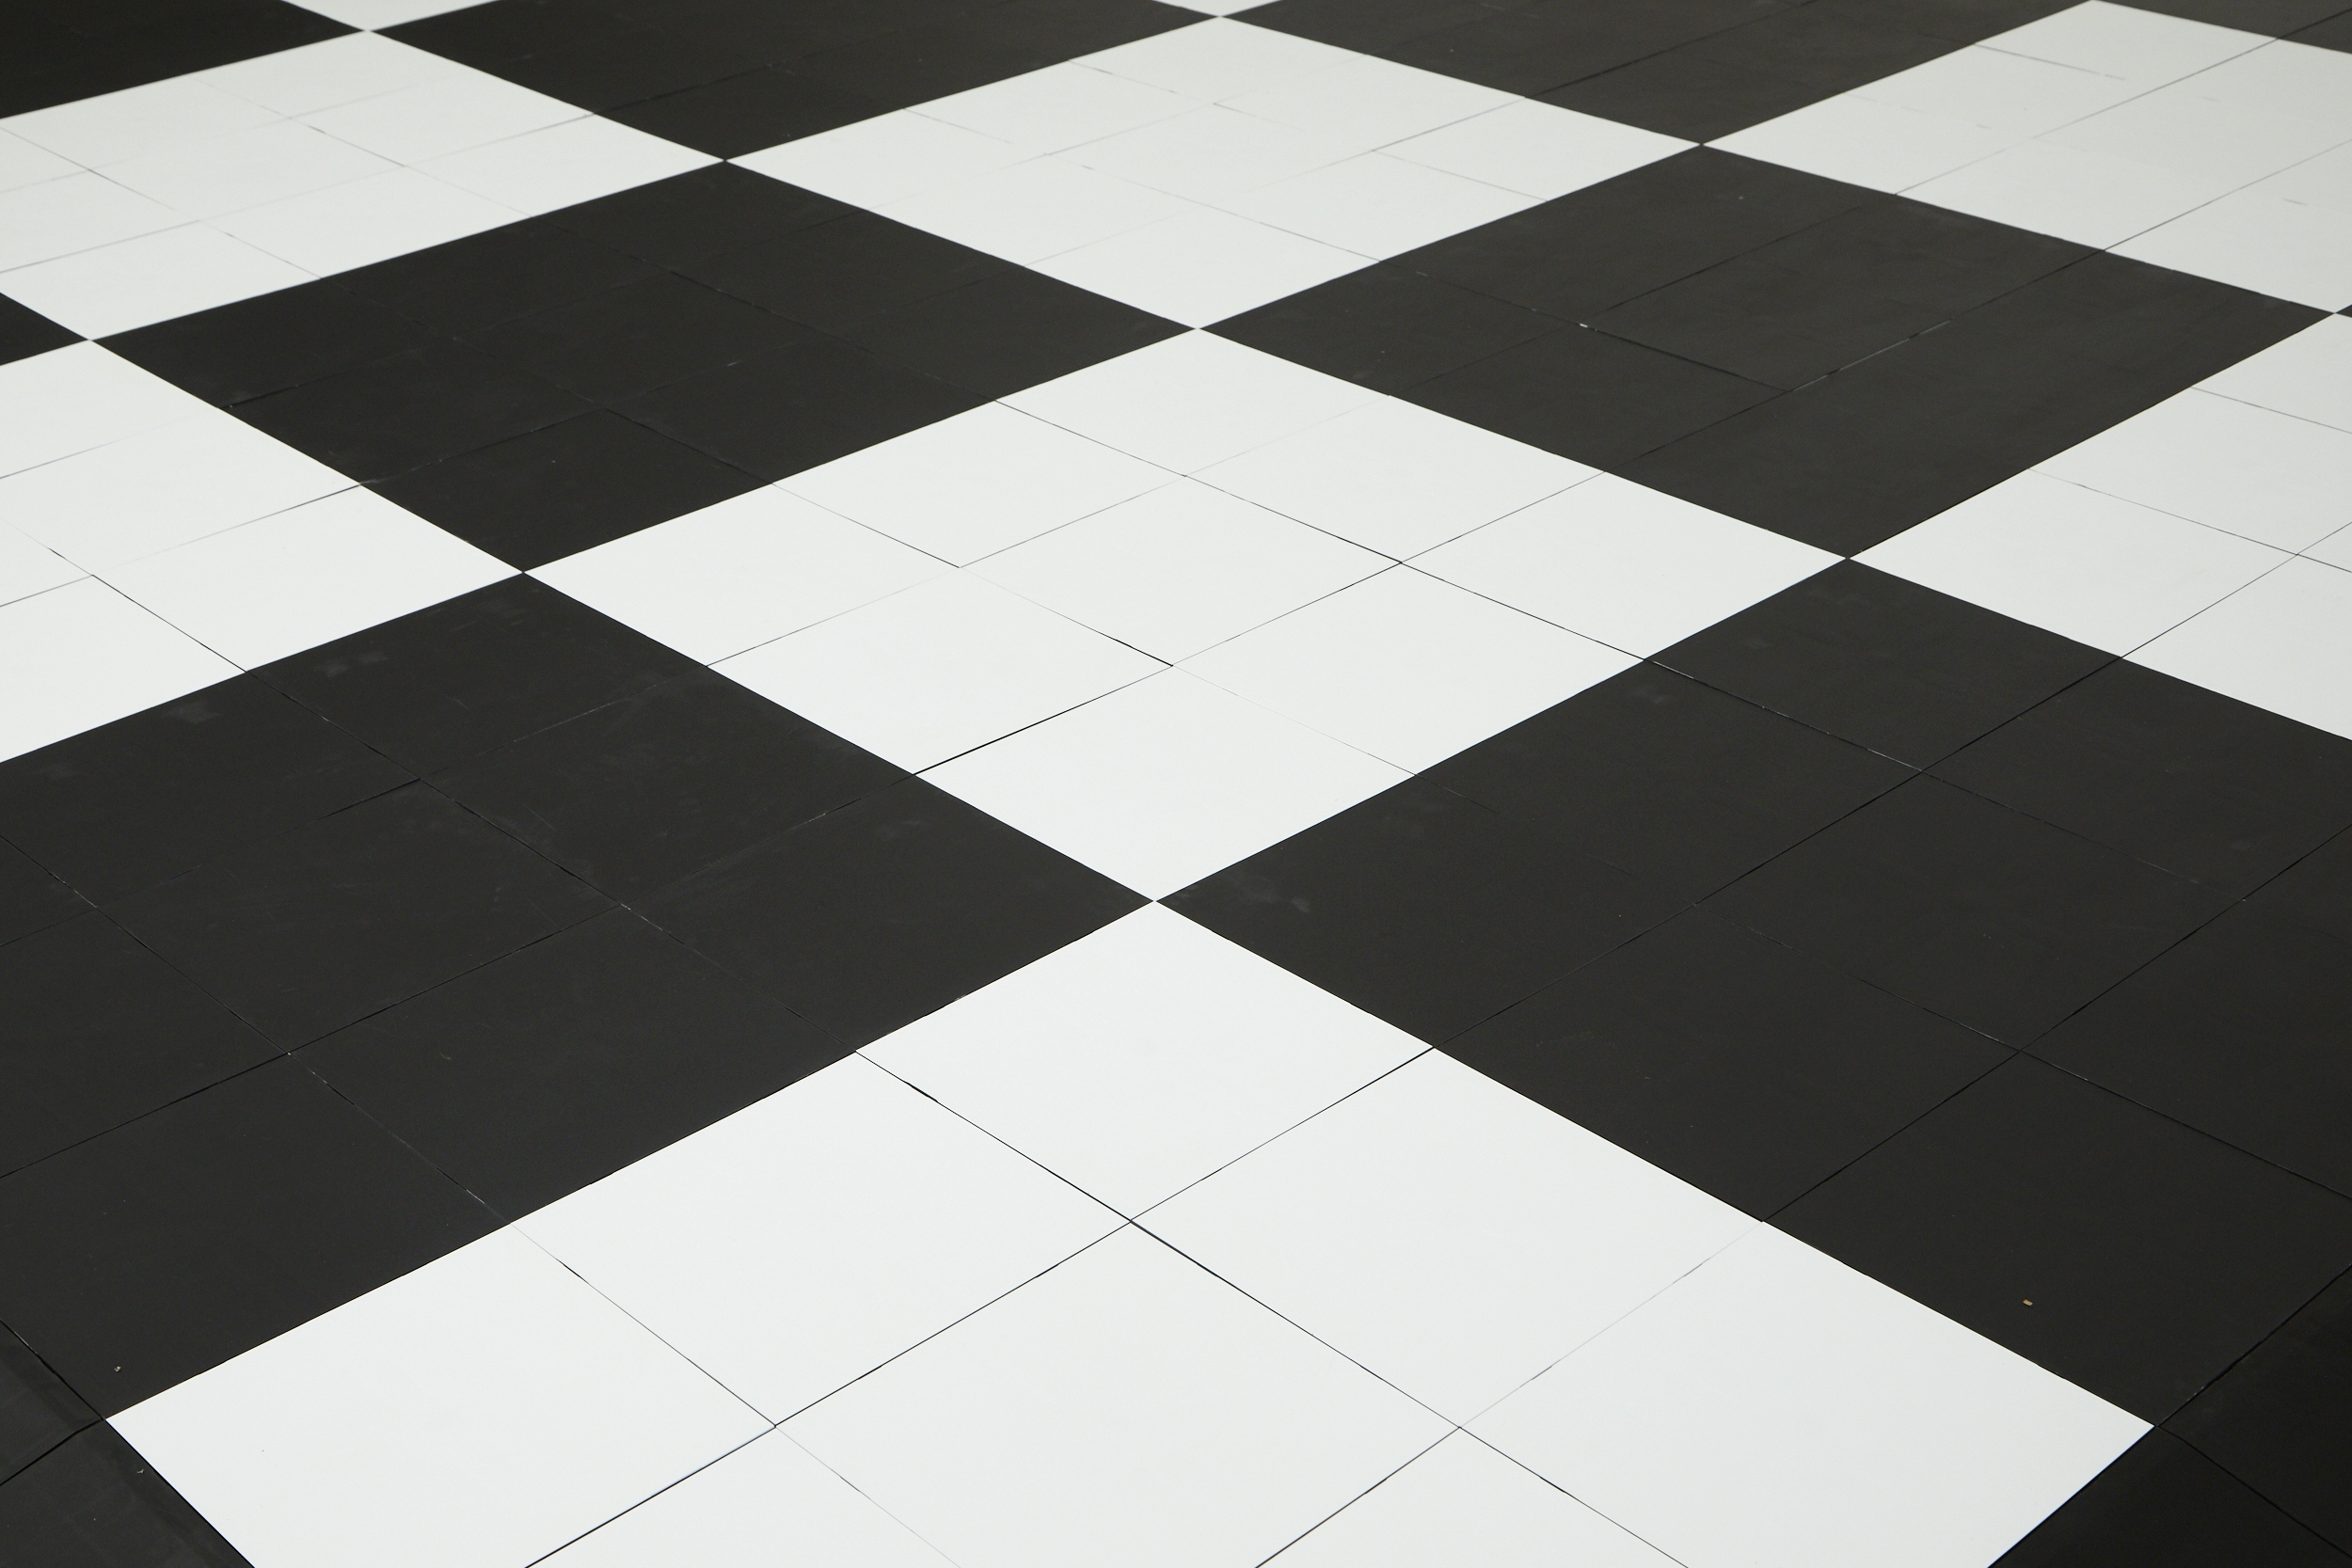 Colorful trade show flooring